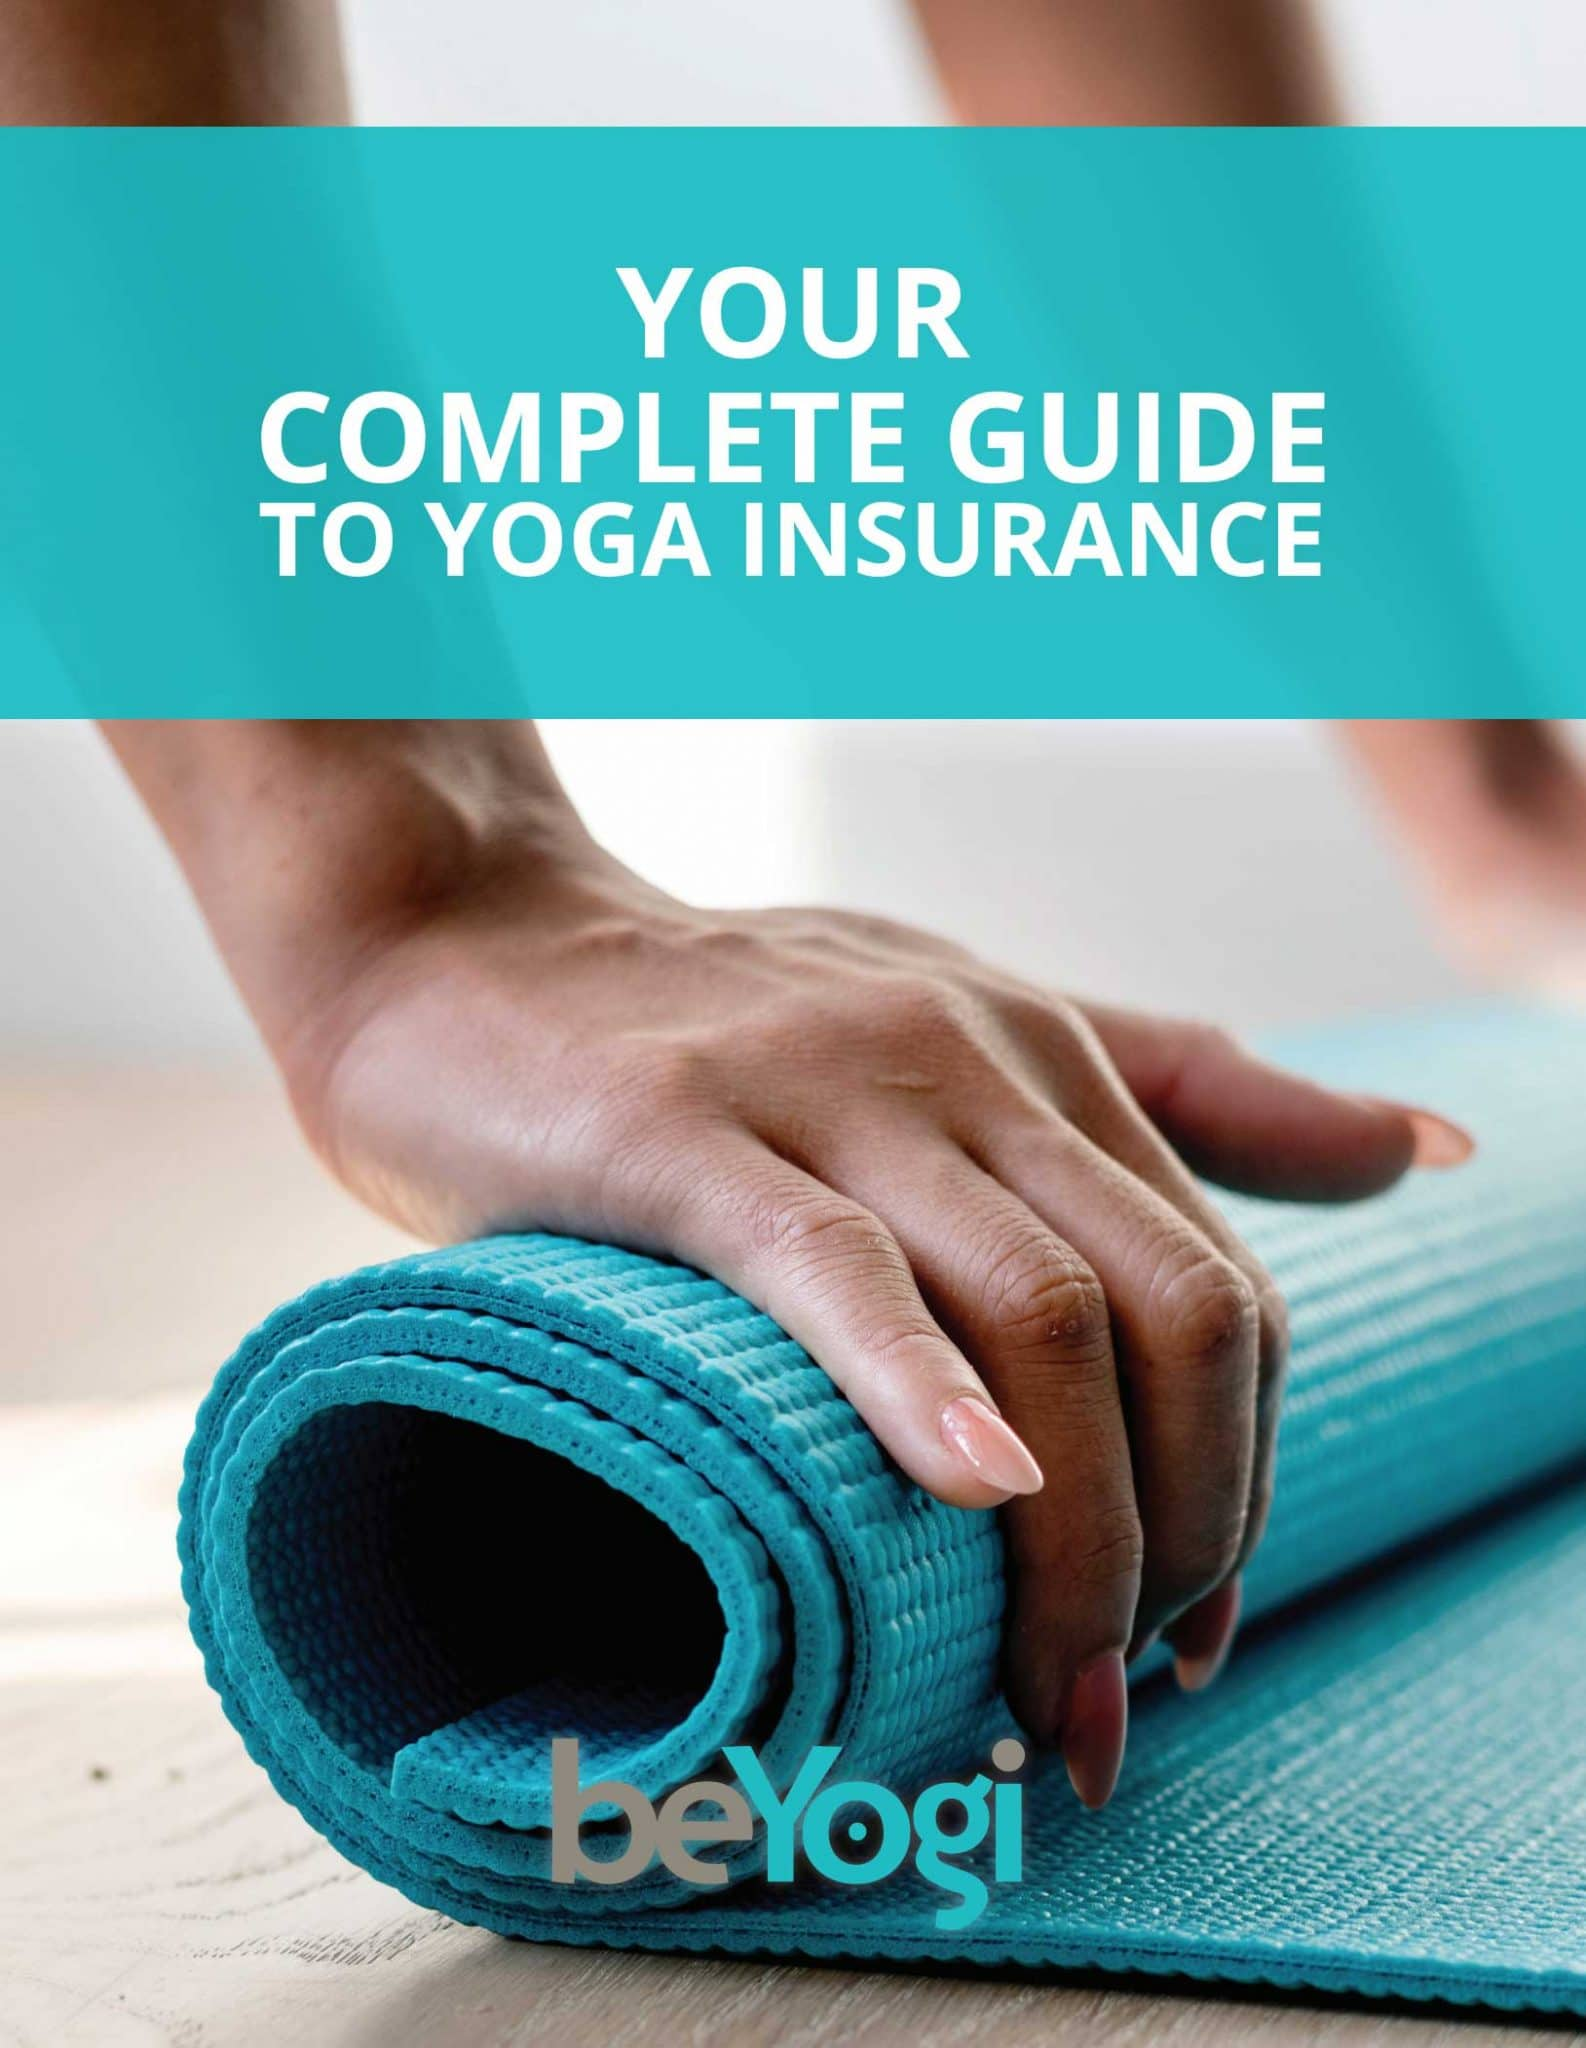 Your Complete Guide to Yoga Insurance